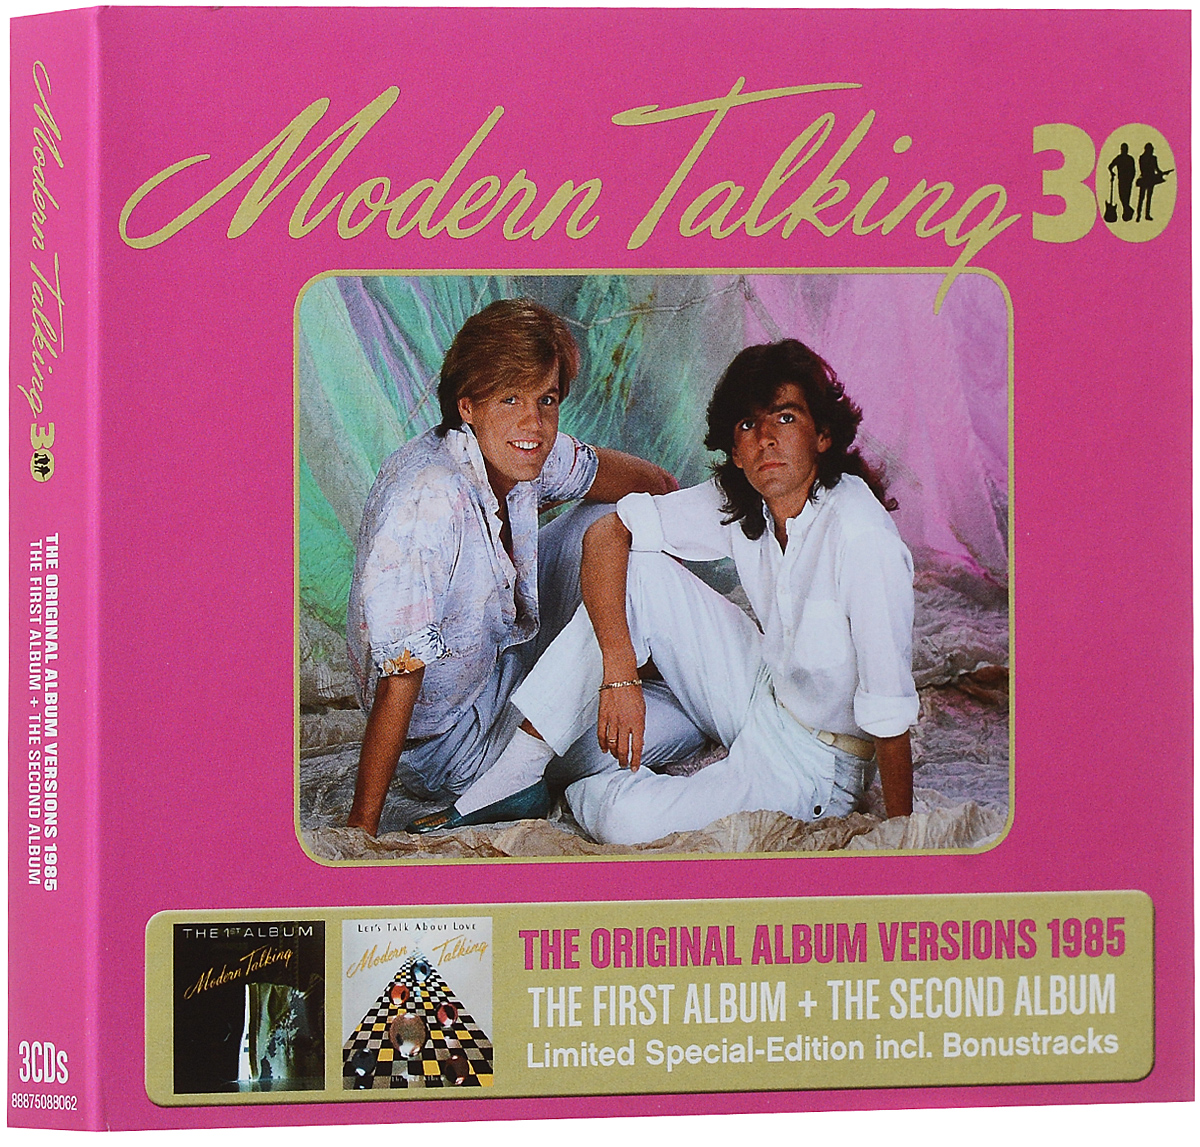 Modern Talking Modern Talking. The Original Album Versions 1985. Limited Special-Edition (3 CD)